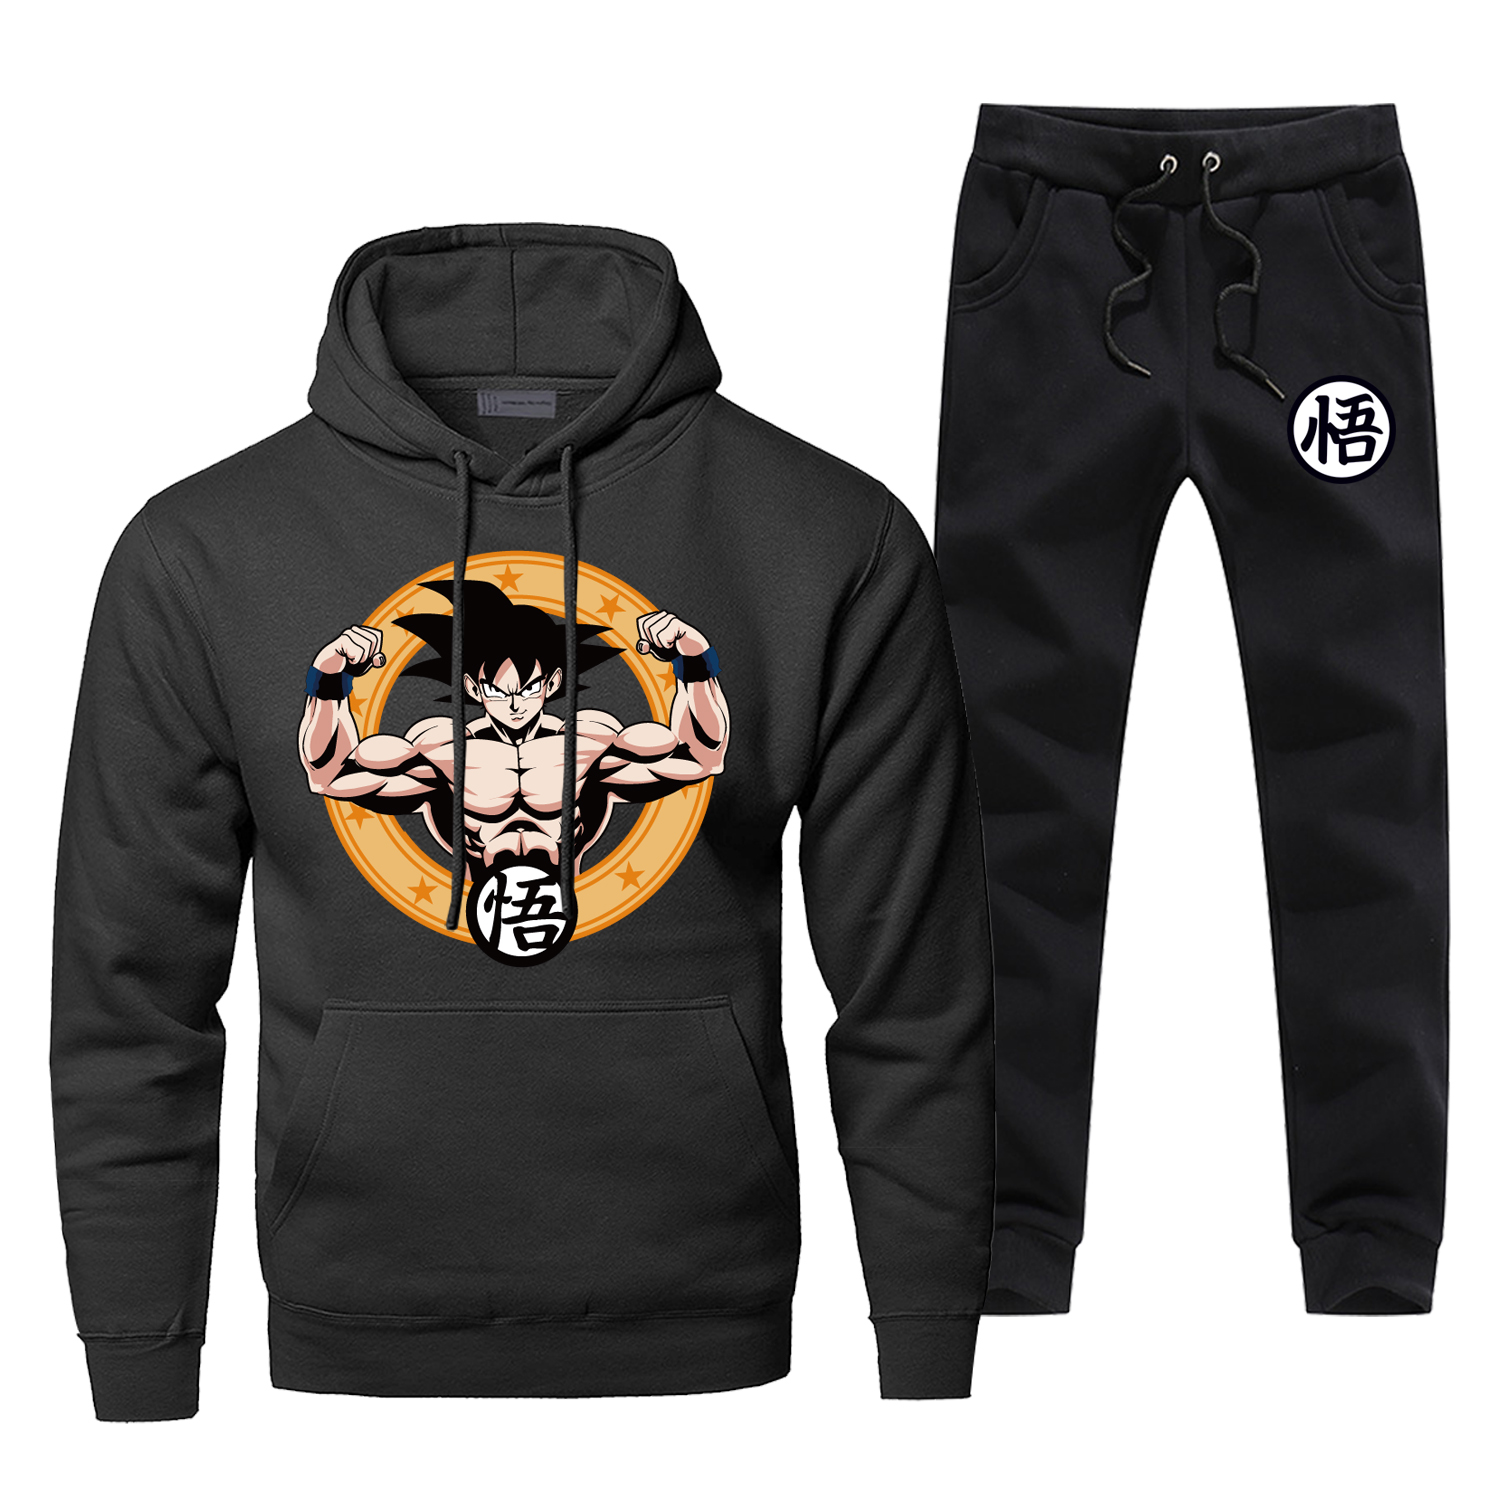 Fashion Dragon Ball Super Saiyan Sweatshirt Tracksuit Men Hoodies Two-piece Sets Hoodies+Pants Warm Fleece Sportswear Sweatpants